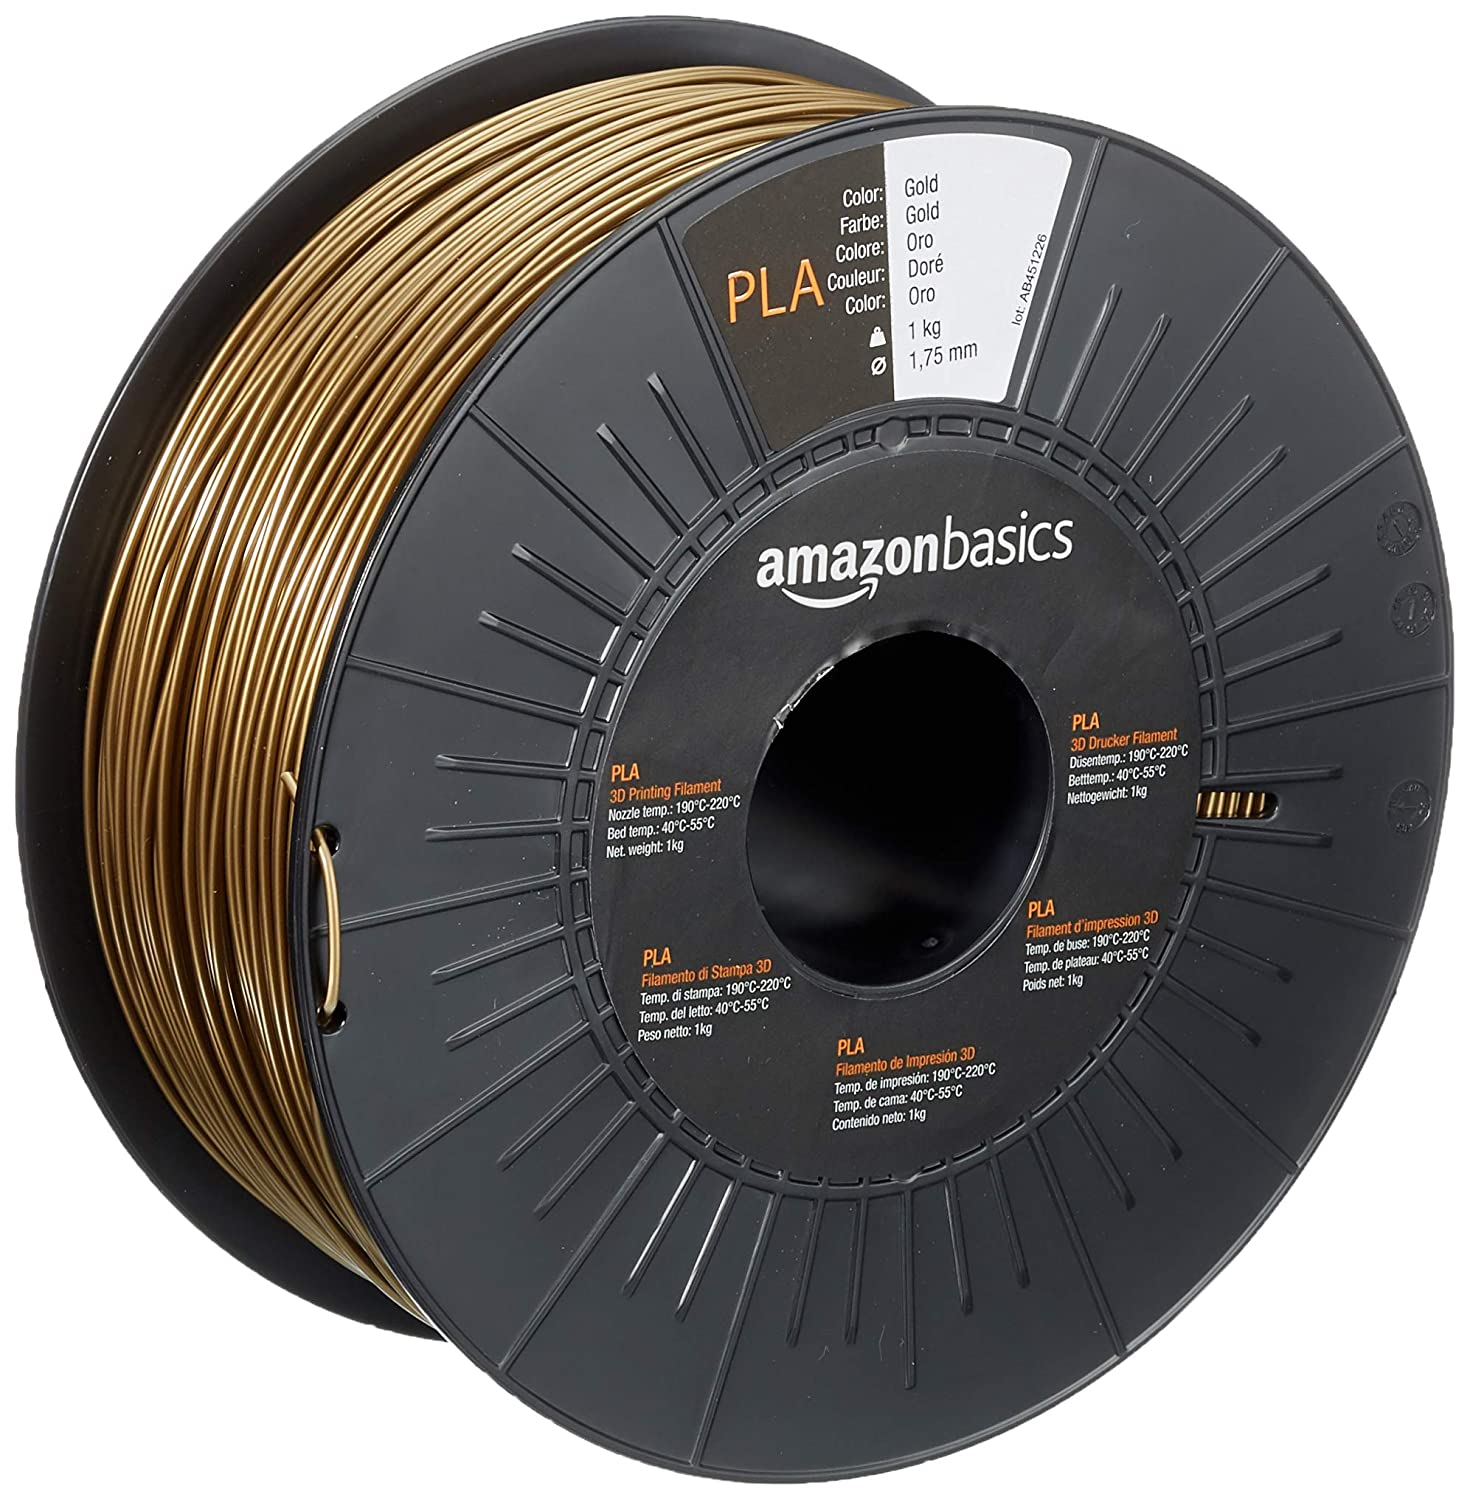 AmazonBasics PLA 3D Printer Filament, 1.75mm, Gold, 1 kg Spool